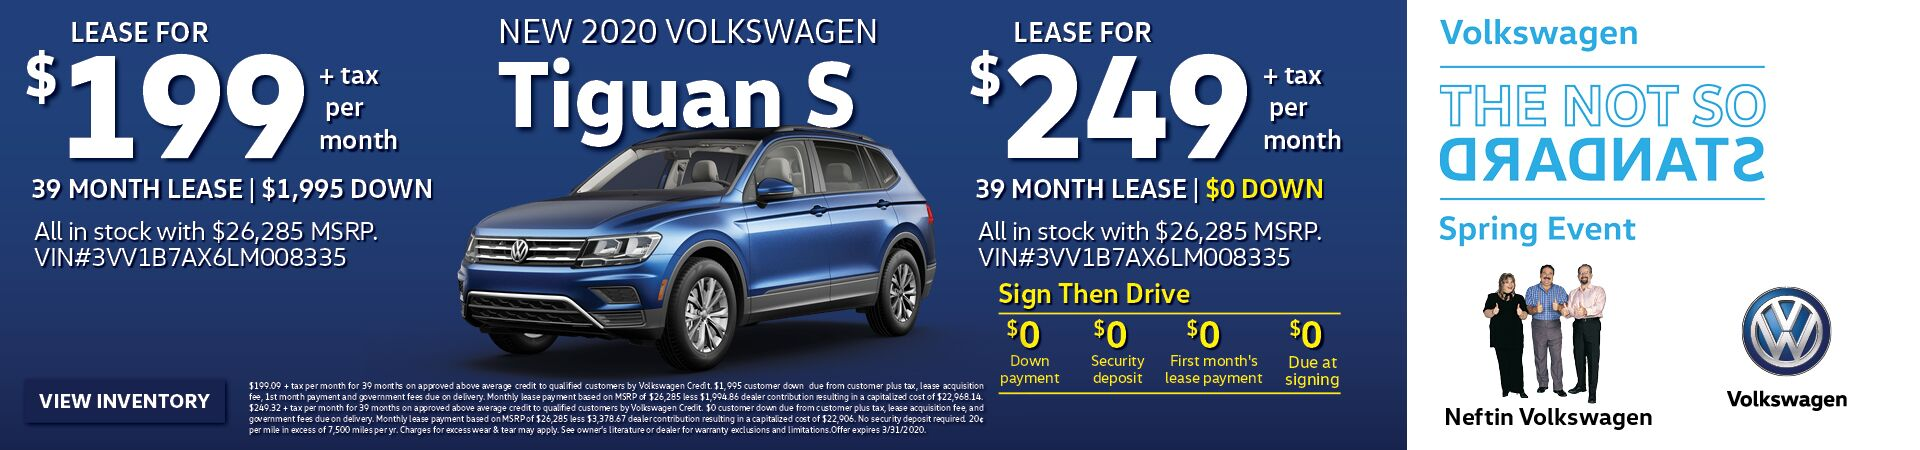 March/April '20 Tiguan Lease Offer